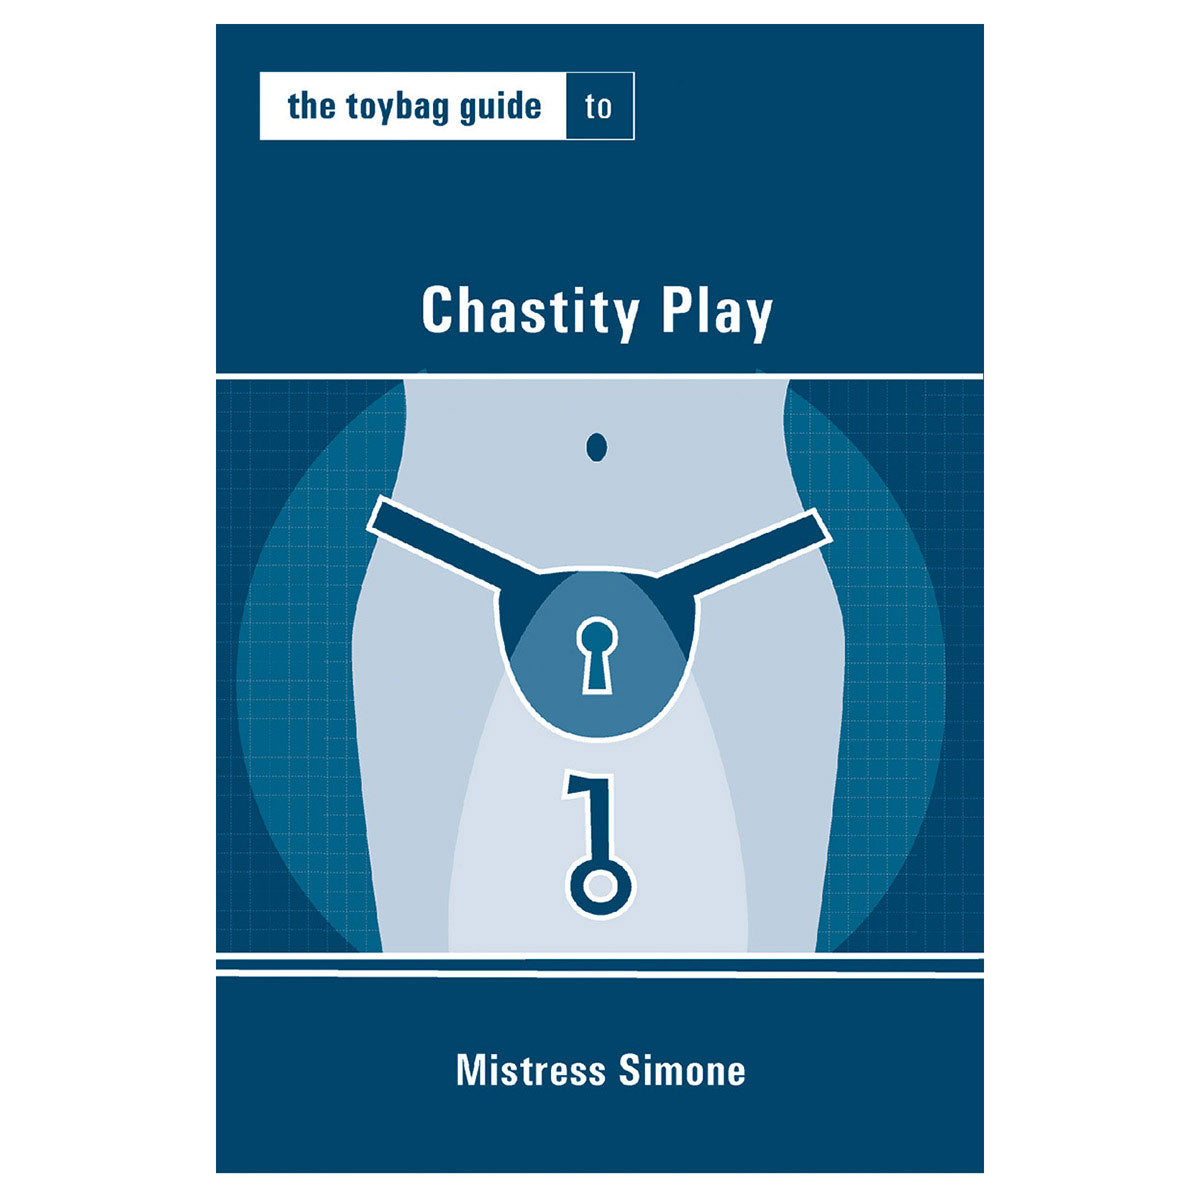 Toybag Guide to Chastity Play - SCB